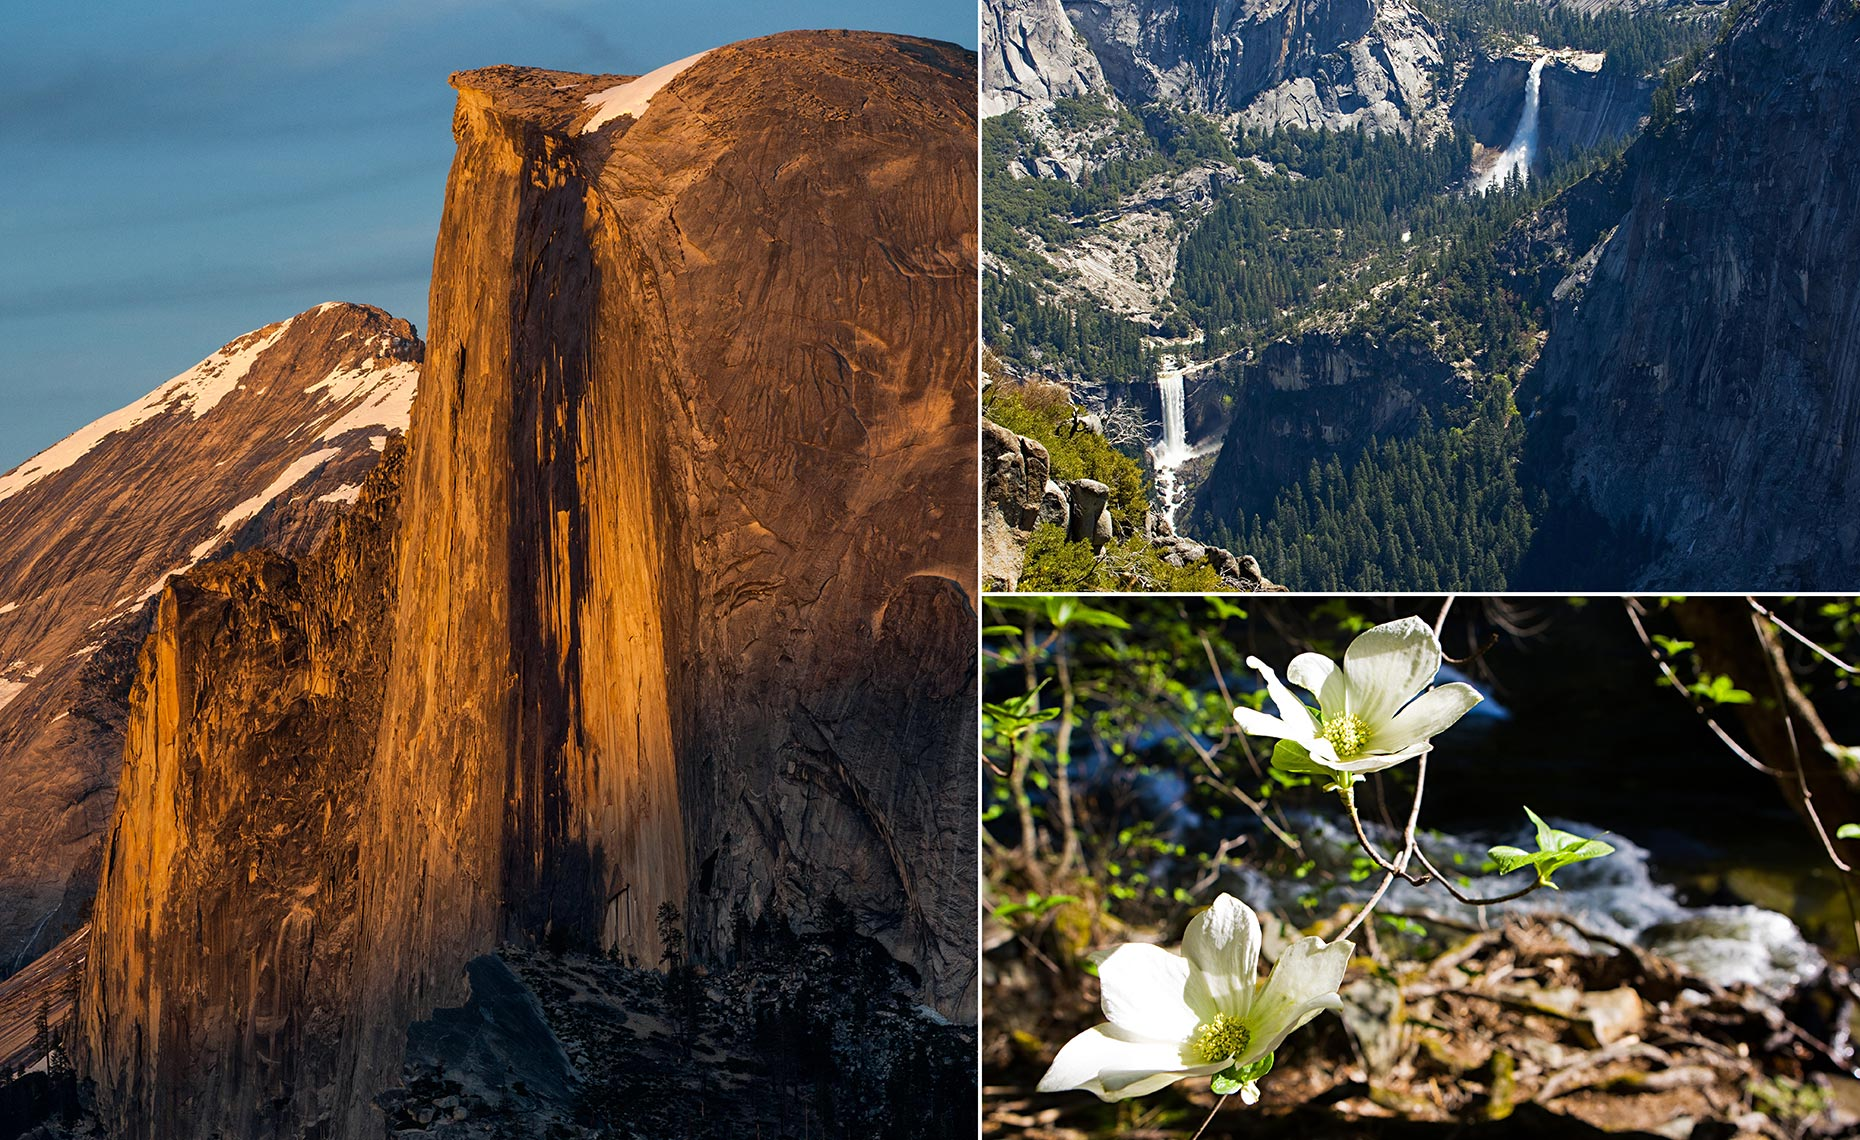 03_Yosemite_National_Park__Half_Dome_Nevada_Falls_California_Environment_Landscape_Chris_Wellhausen_Photography.JPG